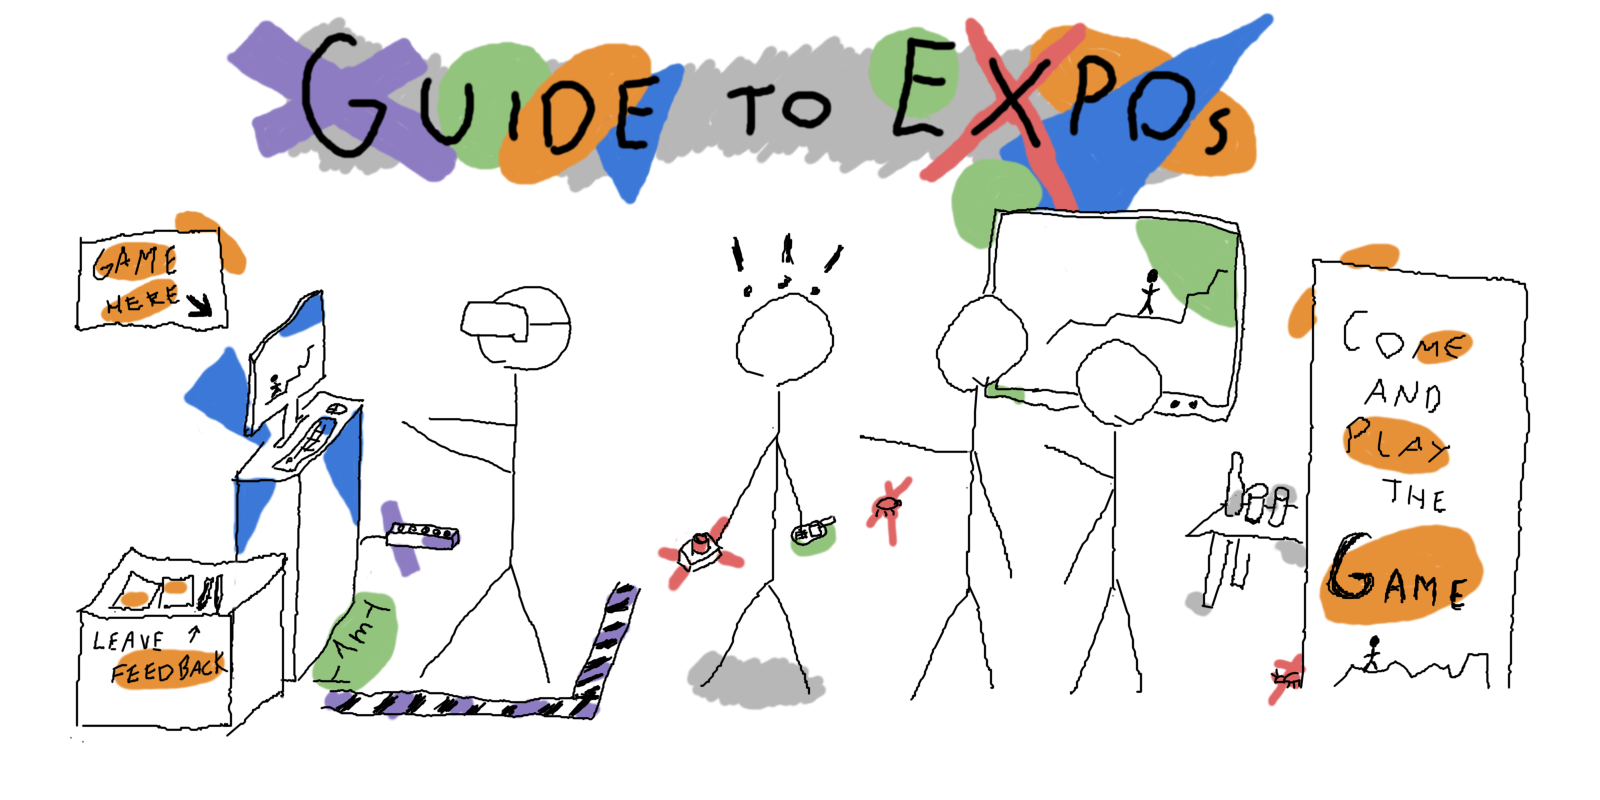 Guide to Expos